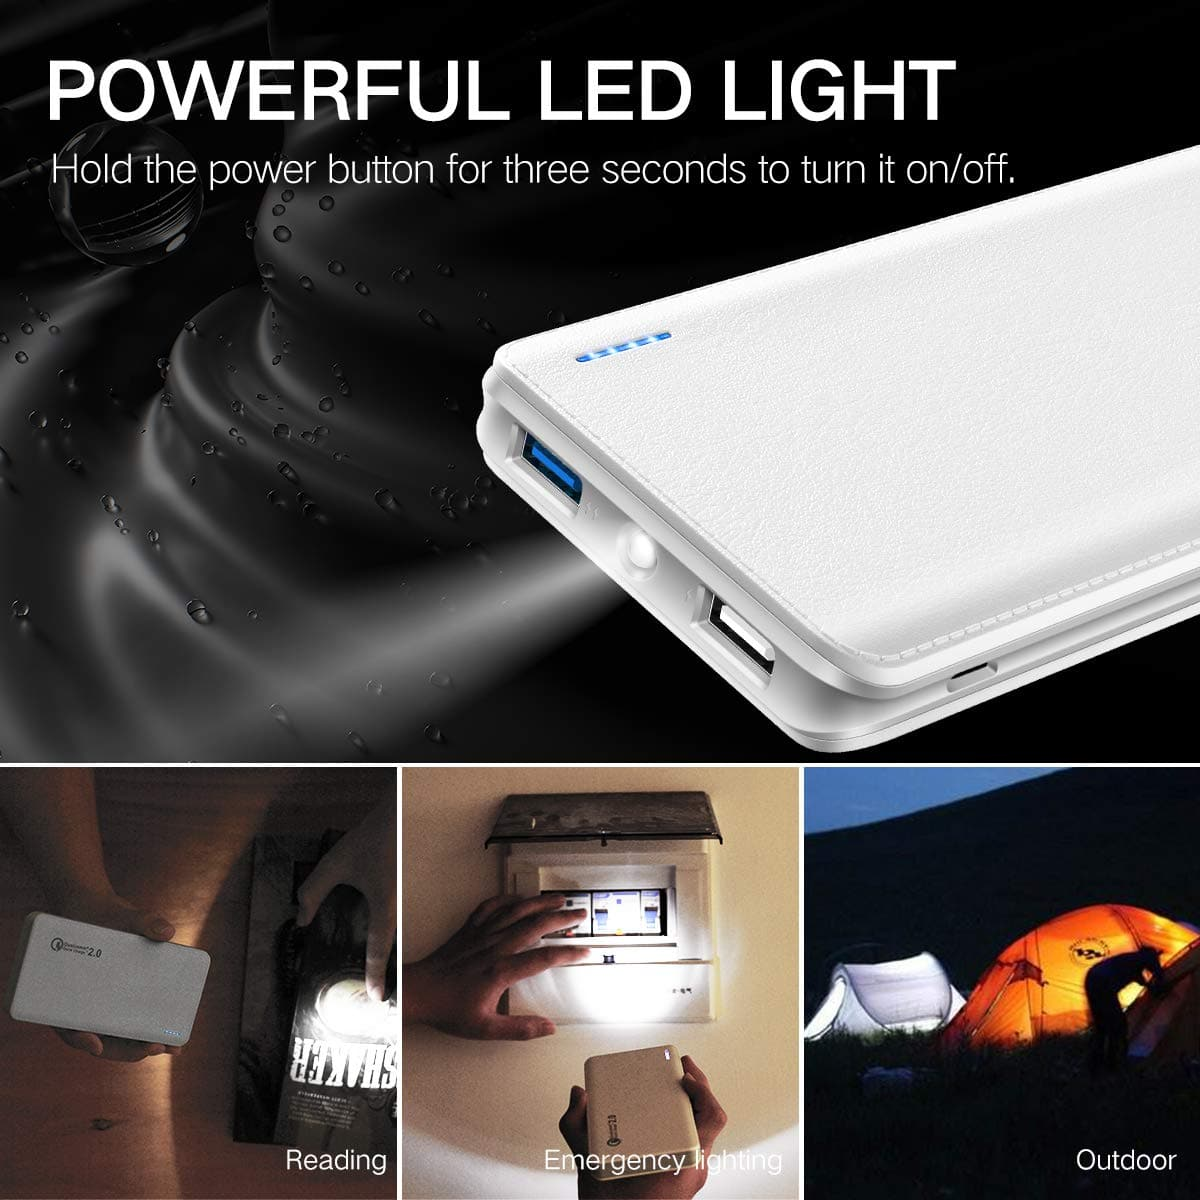 Power Bank 10000mAh, Dual output + Flashlight, Quick Charge 2.0 for iPhone, Samsung, etc -- $8.96 AC FS